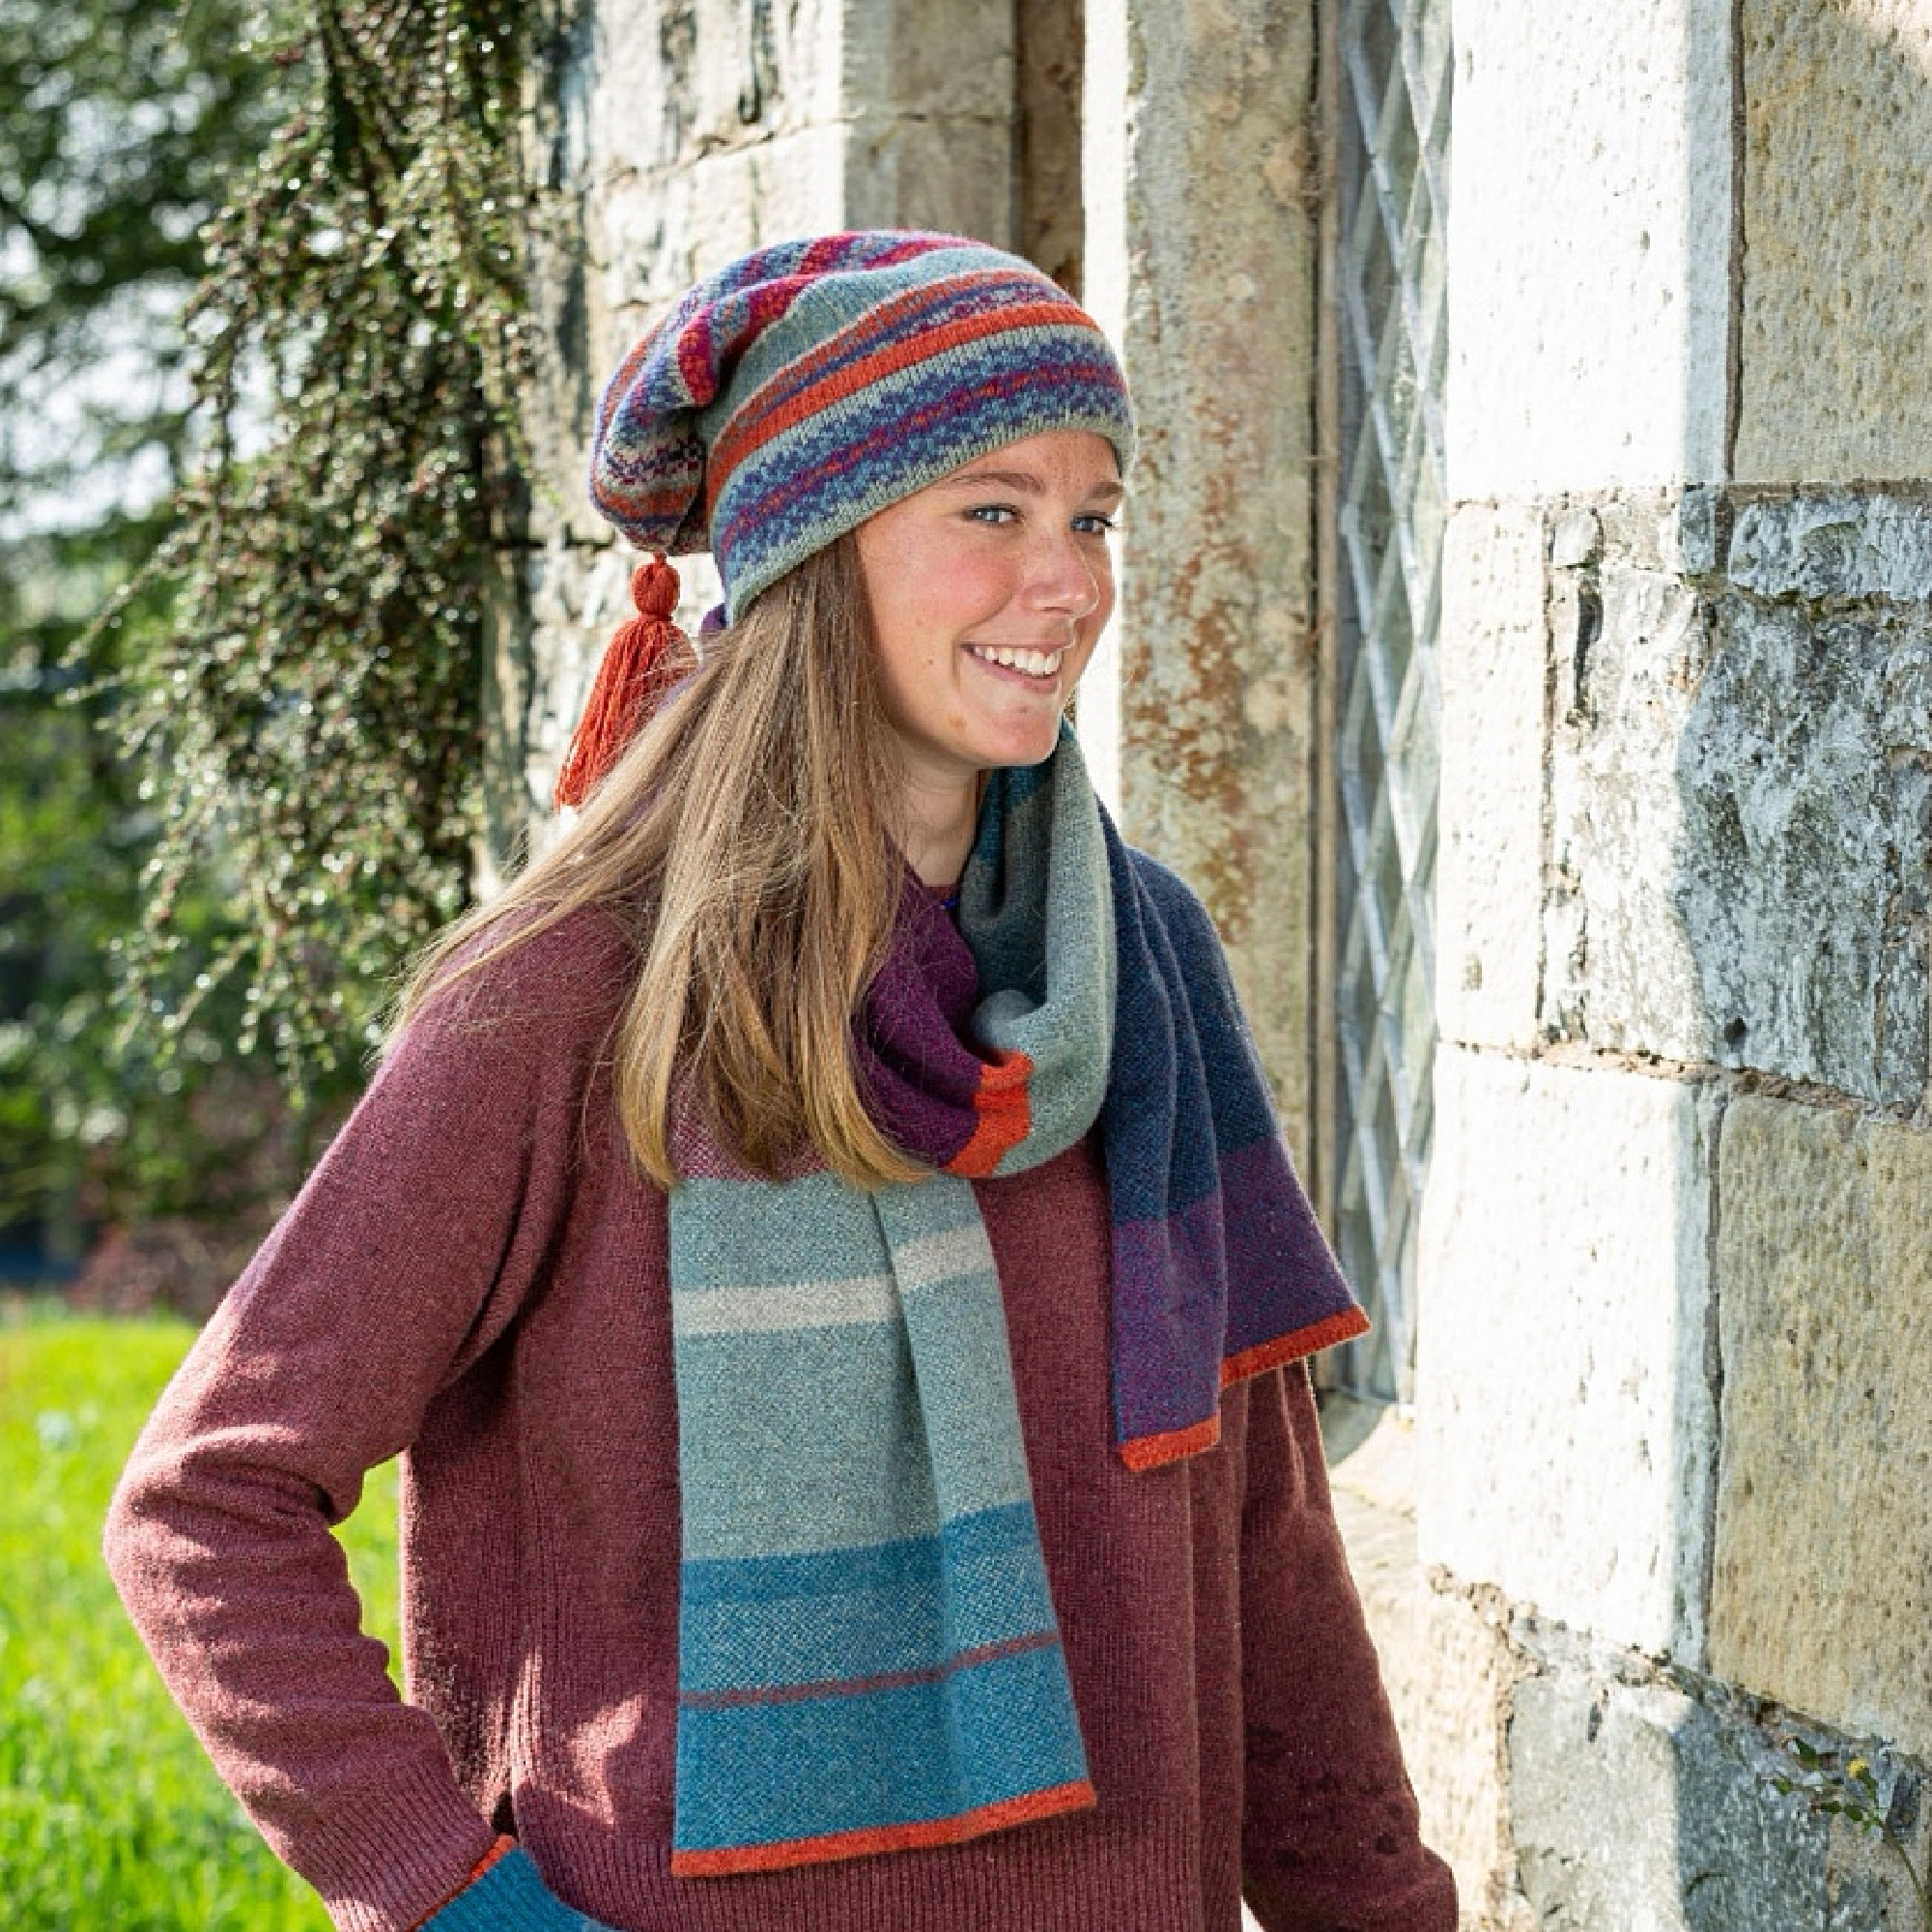 Fairisle Kep Hat by Louise Wedderburn